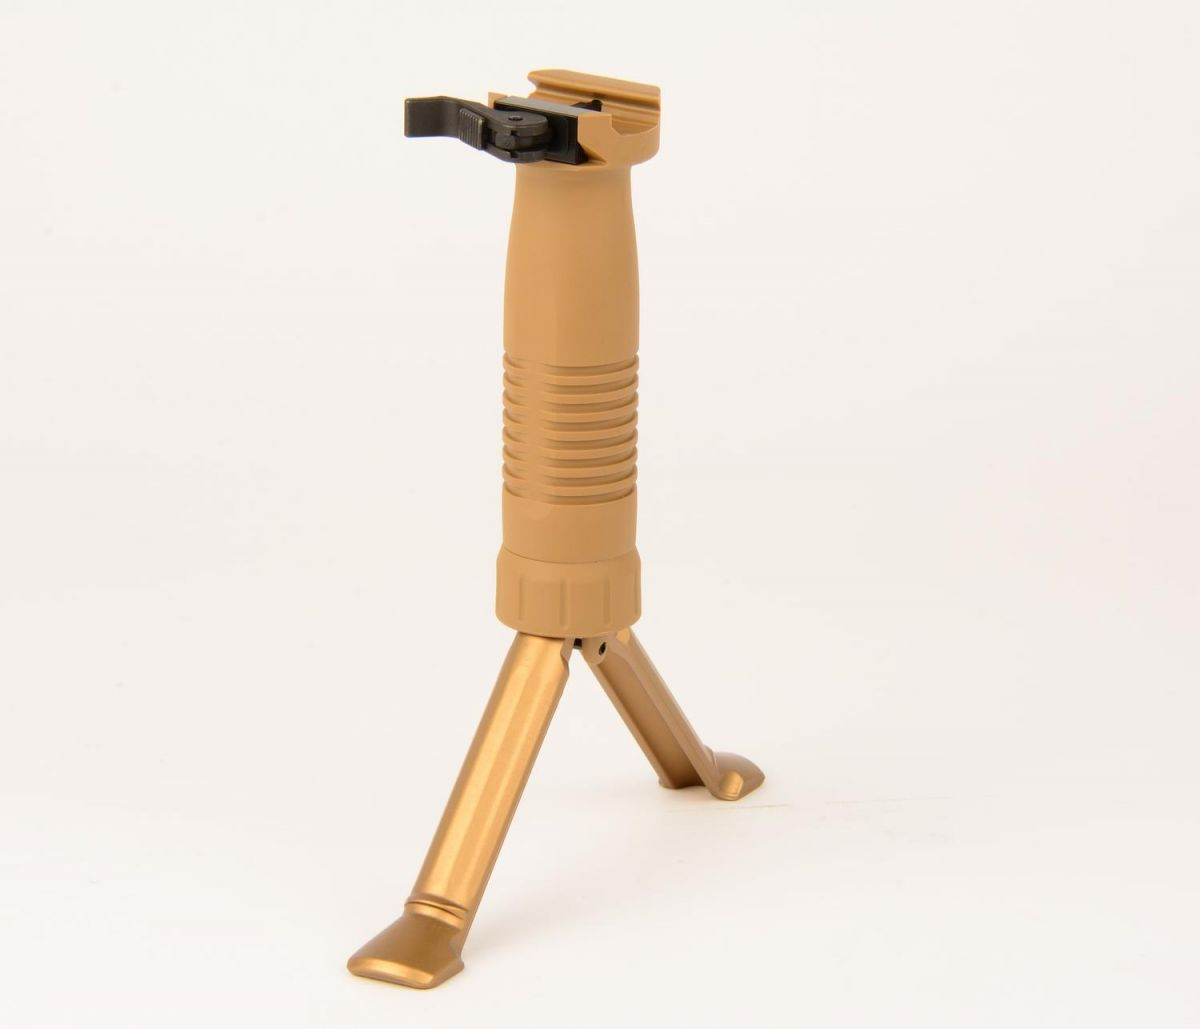 Vertical QD foregrip with integrated bipod (Grip-Pod) Coyote Tan